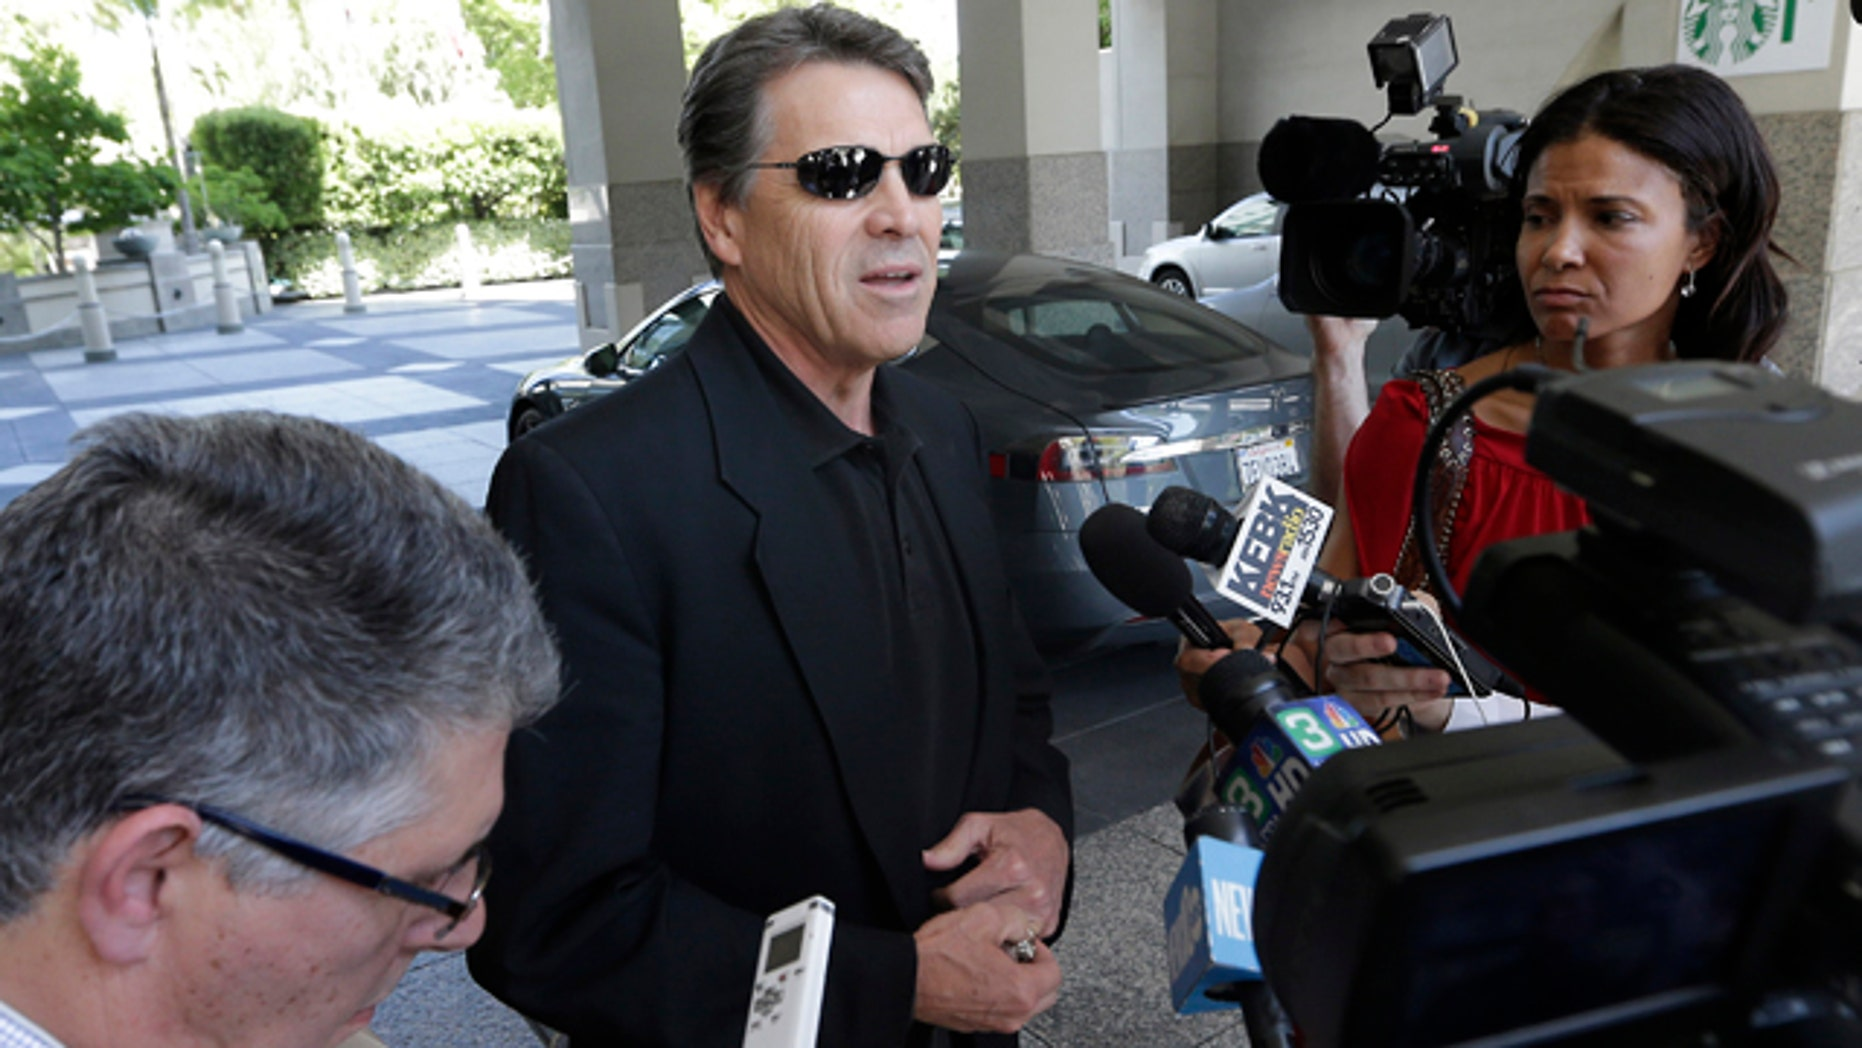 June 10, 2014: Texas Gov. Rick Perry, center, talks to reporters after driving up in a Tesla Motors Type S electric car in Sacramento, Calif. (AP Photo/Rich Pedroncelli)